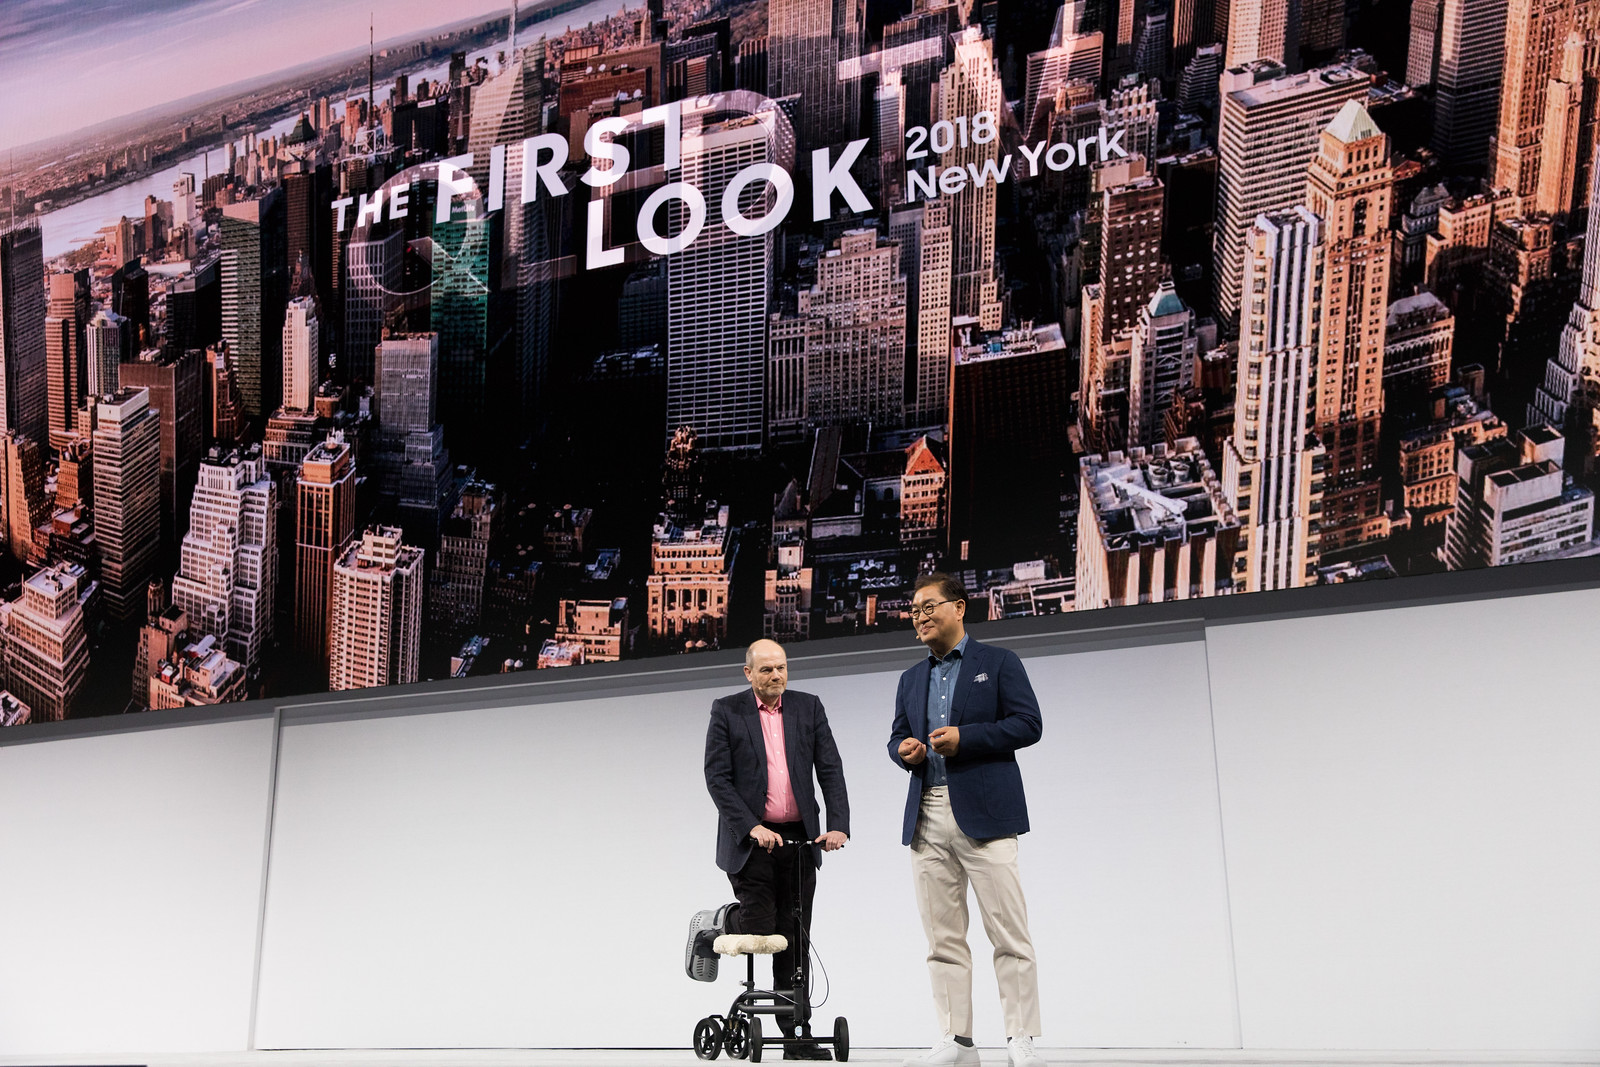 President Han was joined on stage with Mark Thompson, President and Chief Executive Officer of The New York Times Company.